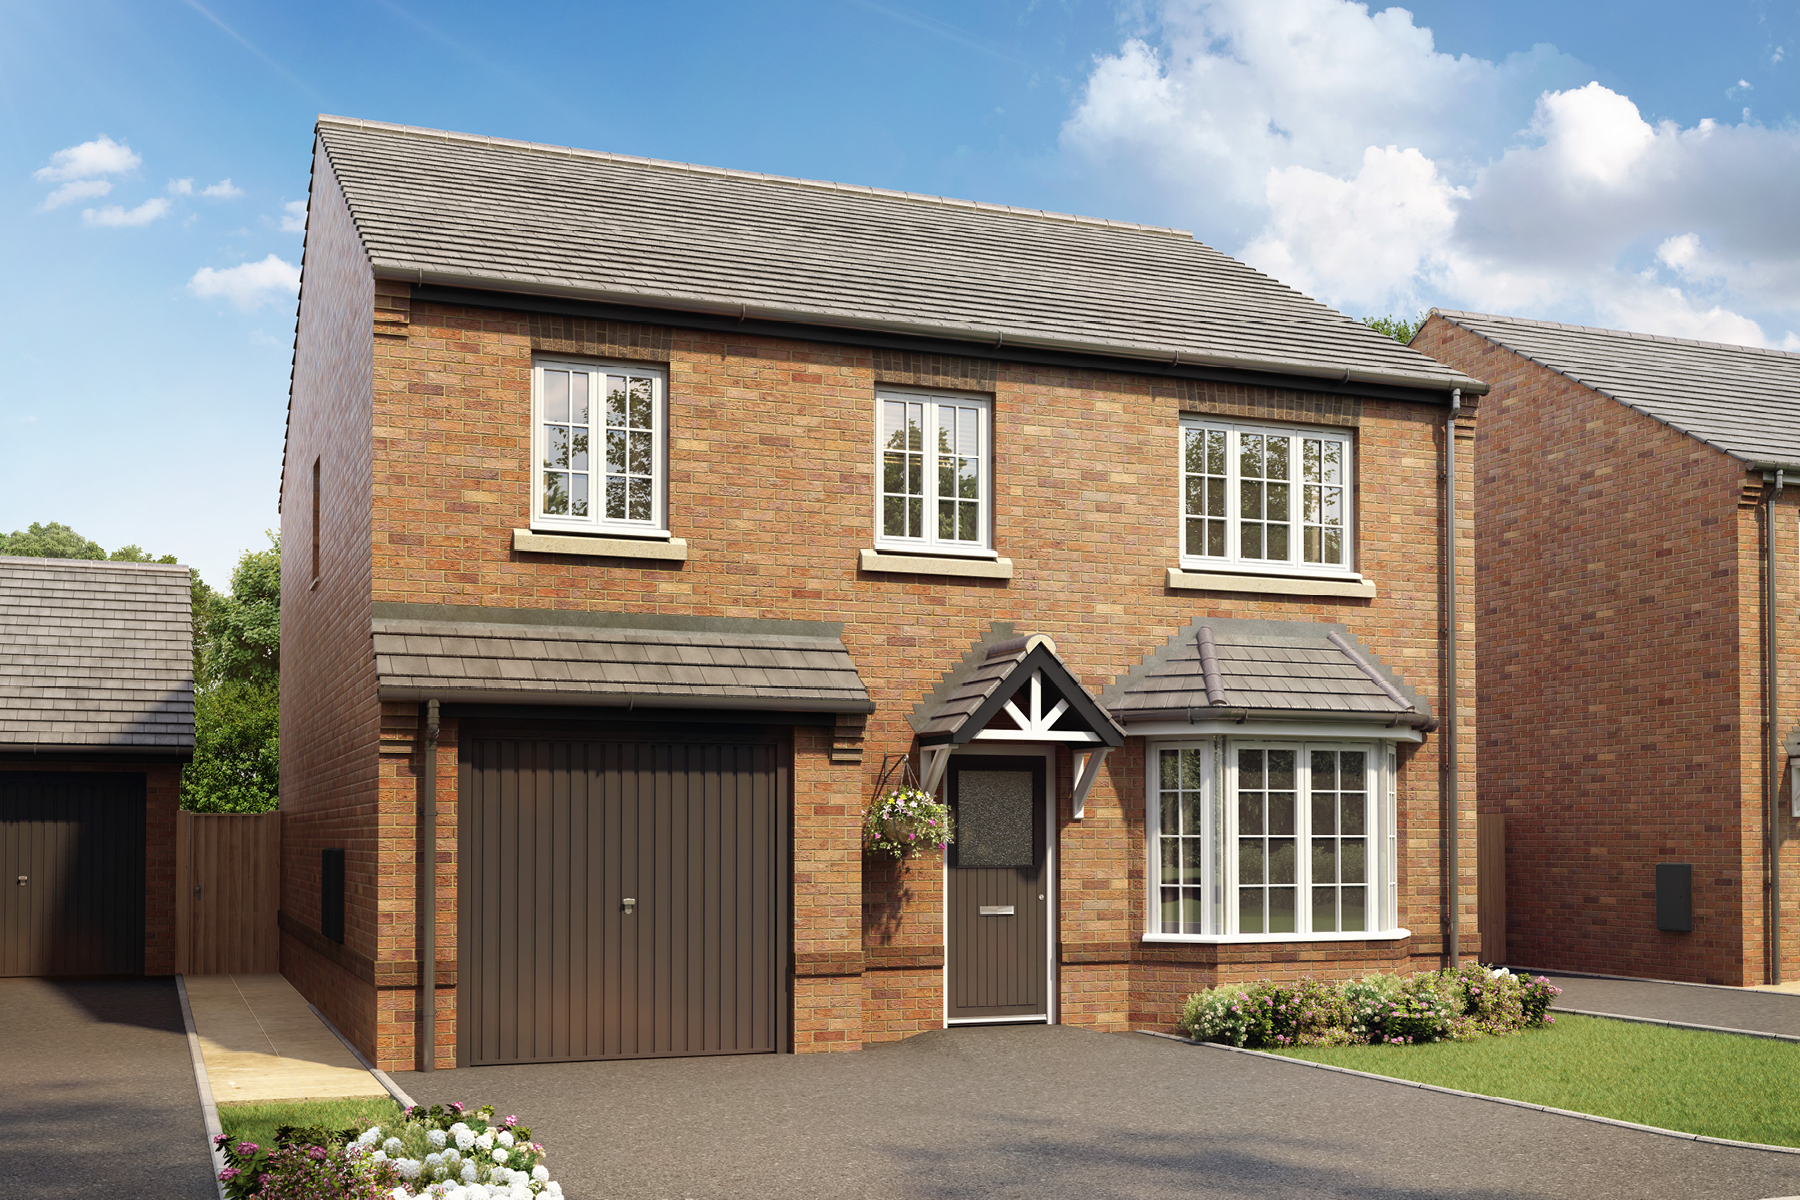 New TWY - Foxley Meadows - CGI - Downham